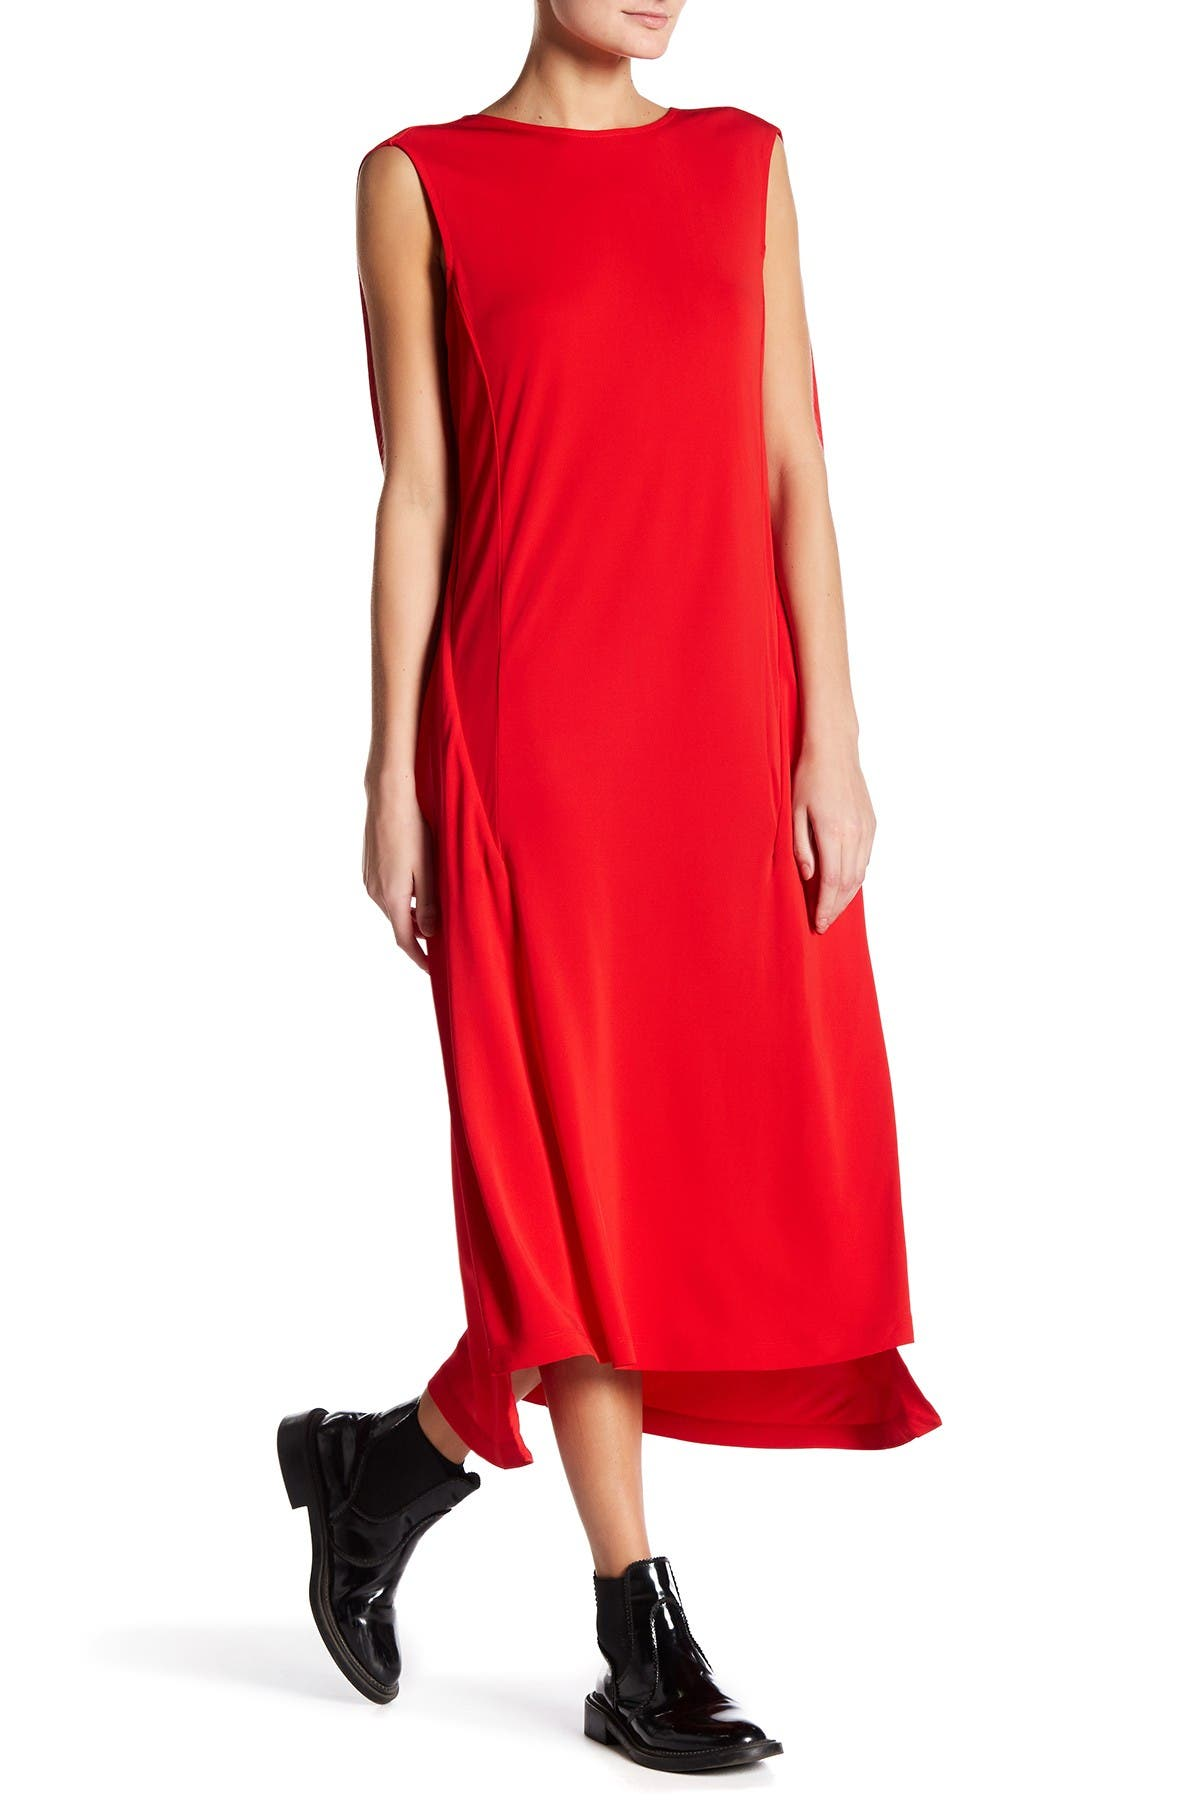 Image of DKNY Sleeveless Dress